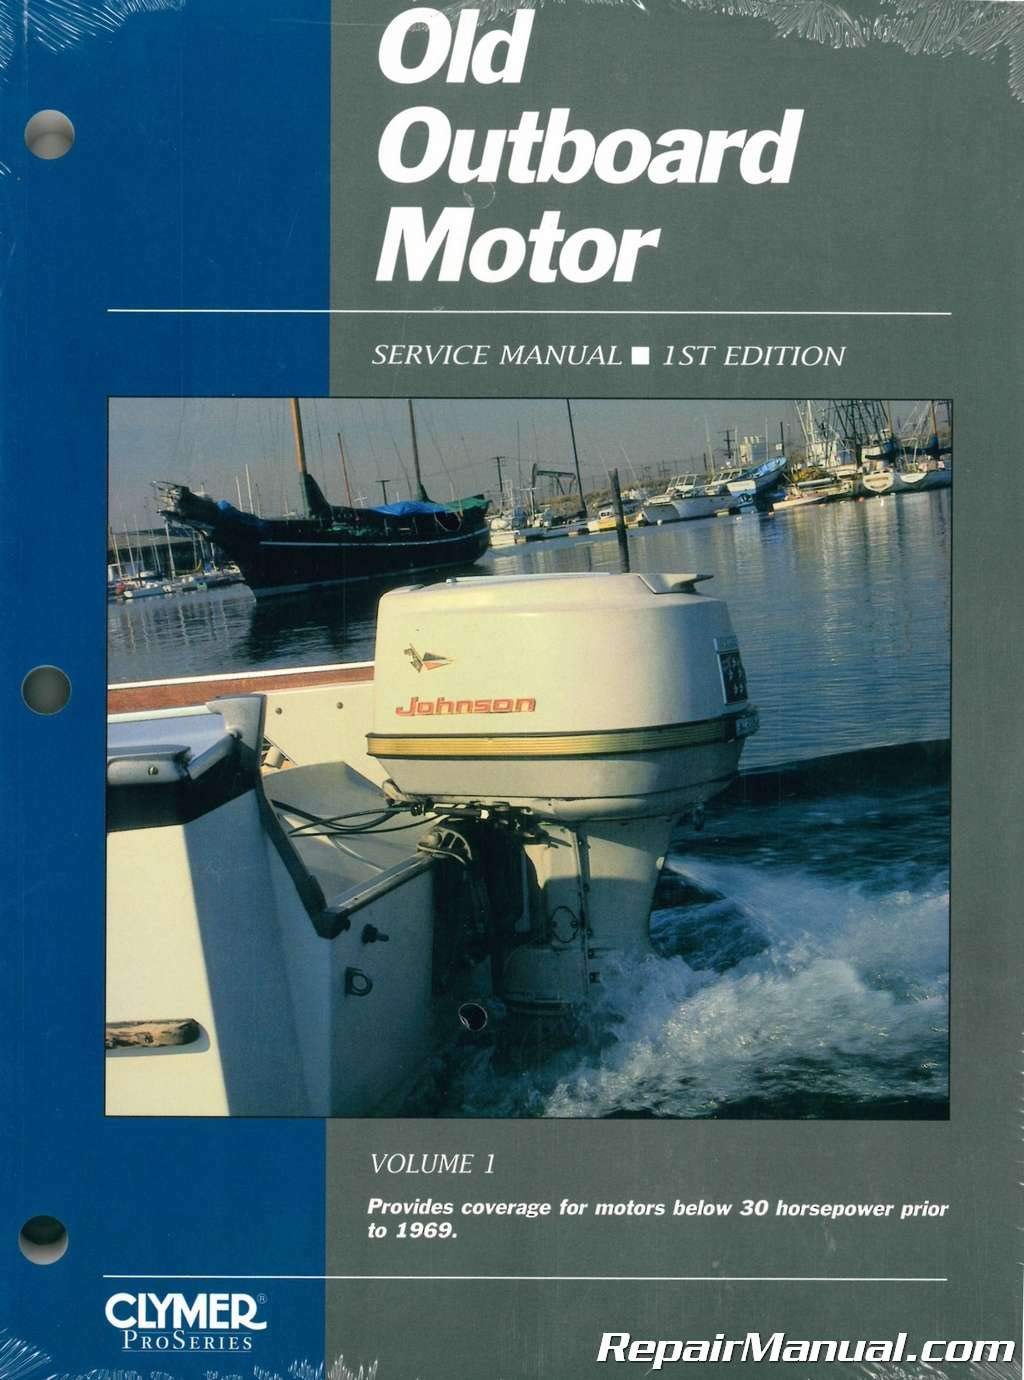 Old Outboard Motor Service V 1 (Old Outboard Motor Service Manual) by Clymer